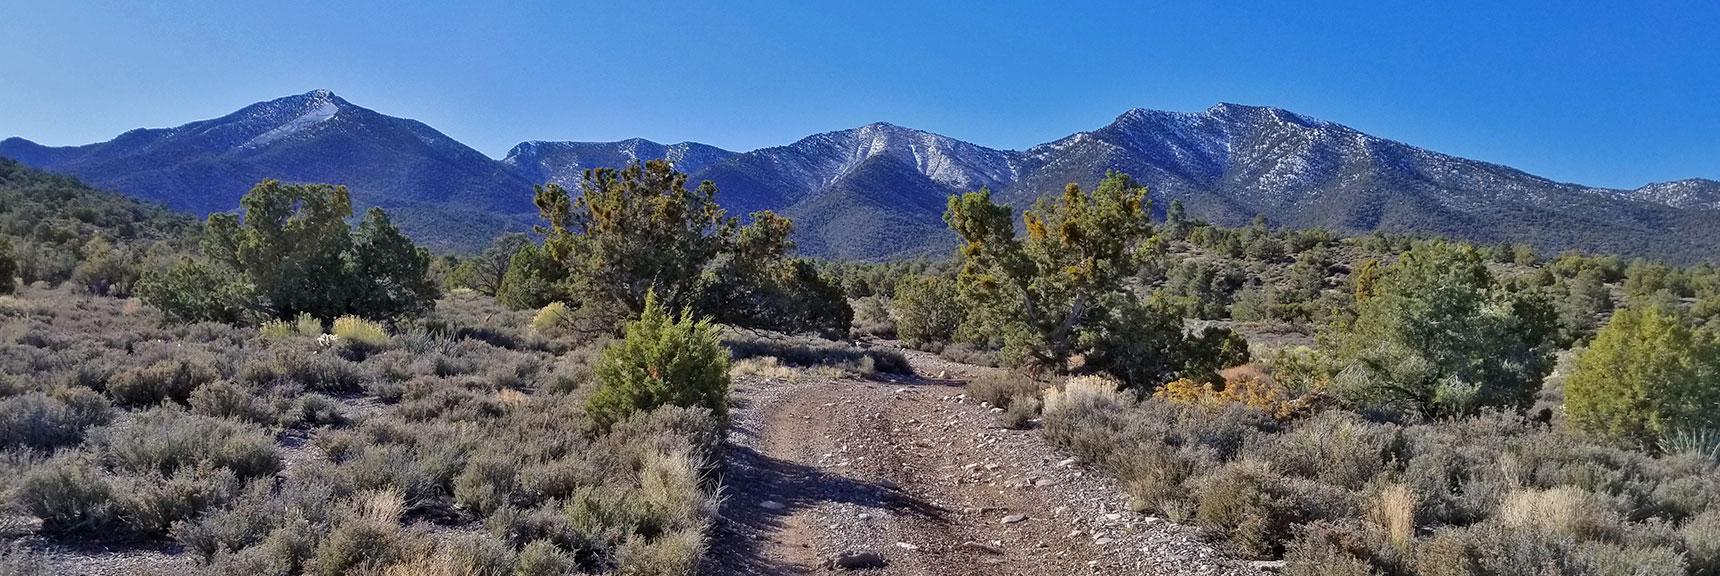 Heading Up 4wd Road Toward North Side of La Madre Mt. Nevada